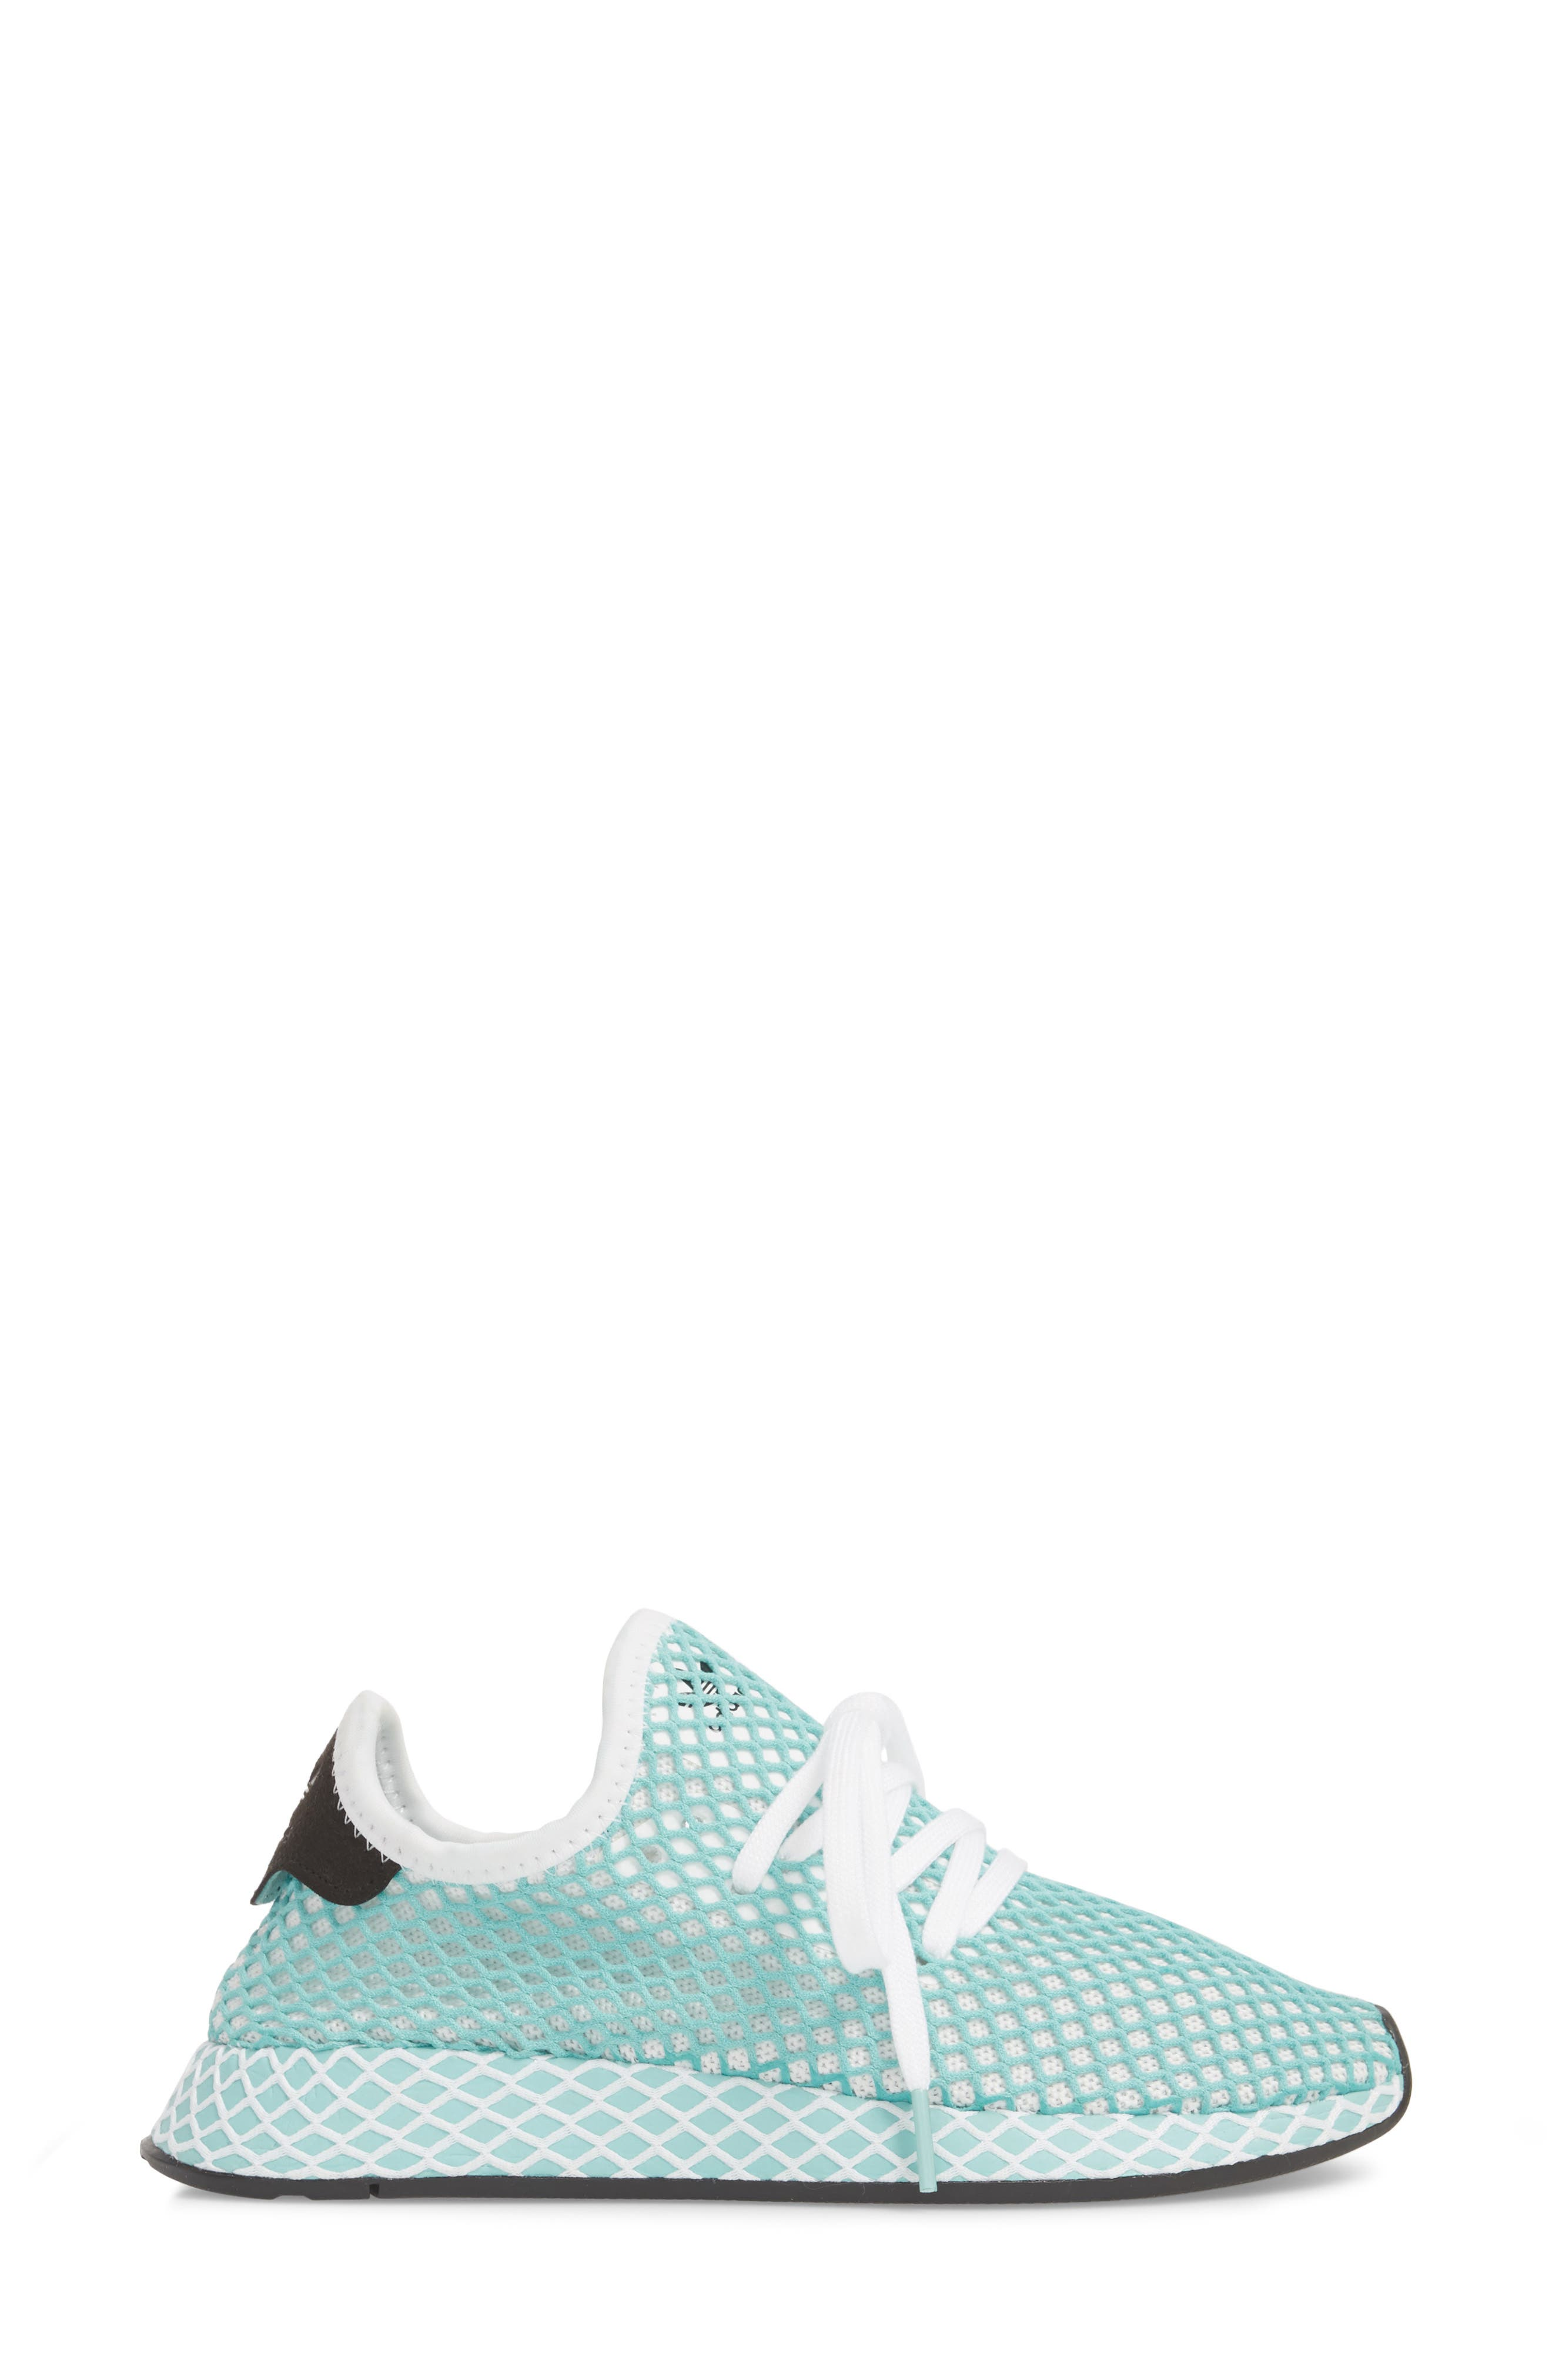 Deerupt x Parley Runner Sneaker,                             Alternate thumbnail 3, color,                             White/ White/ Blue Spirit